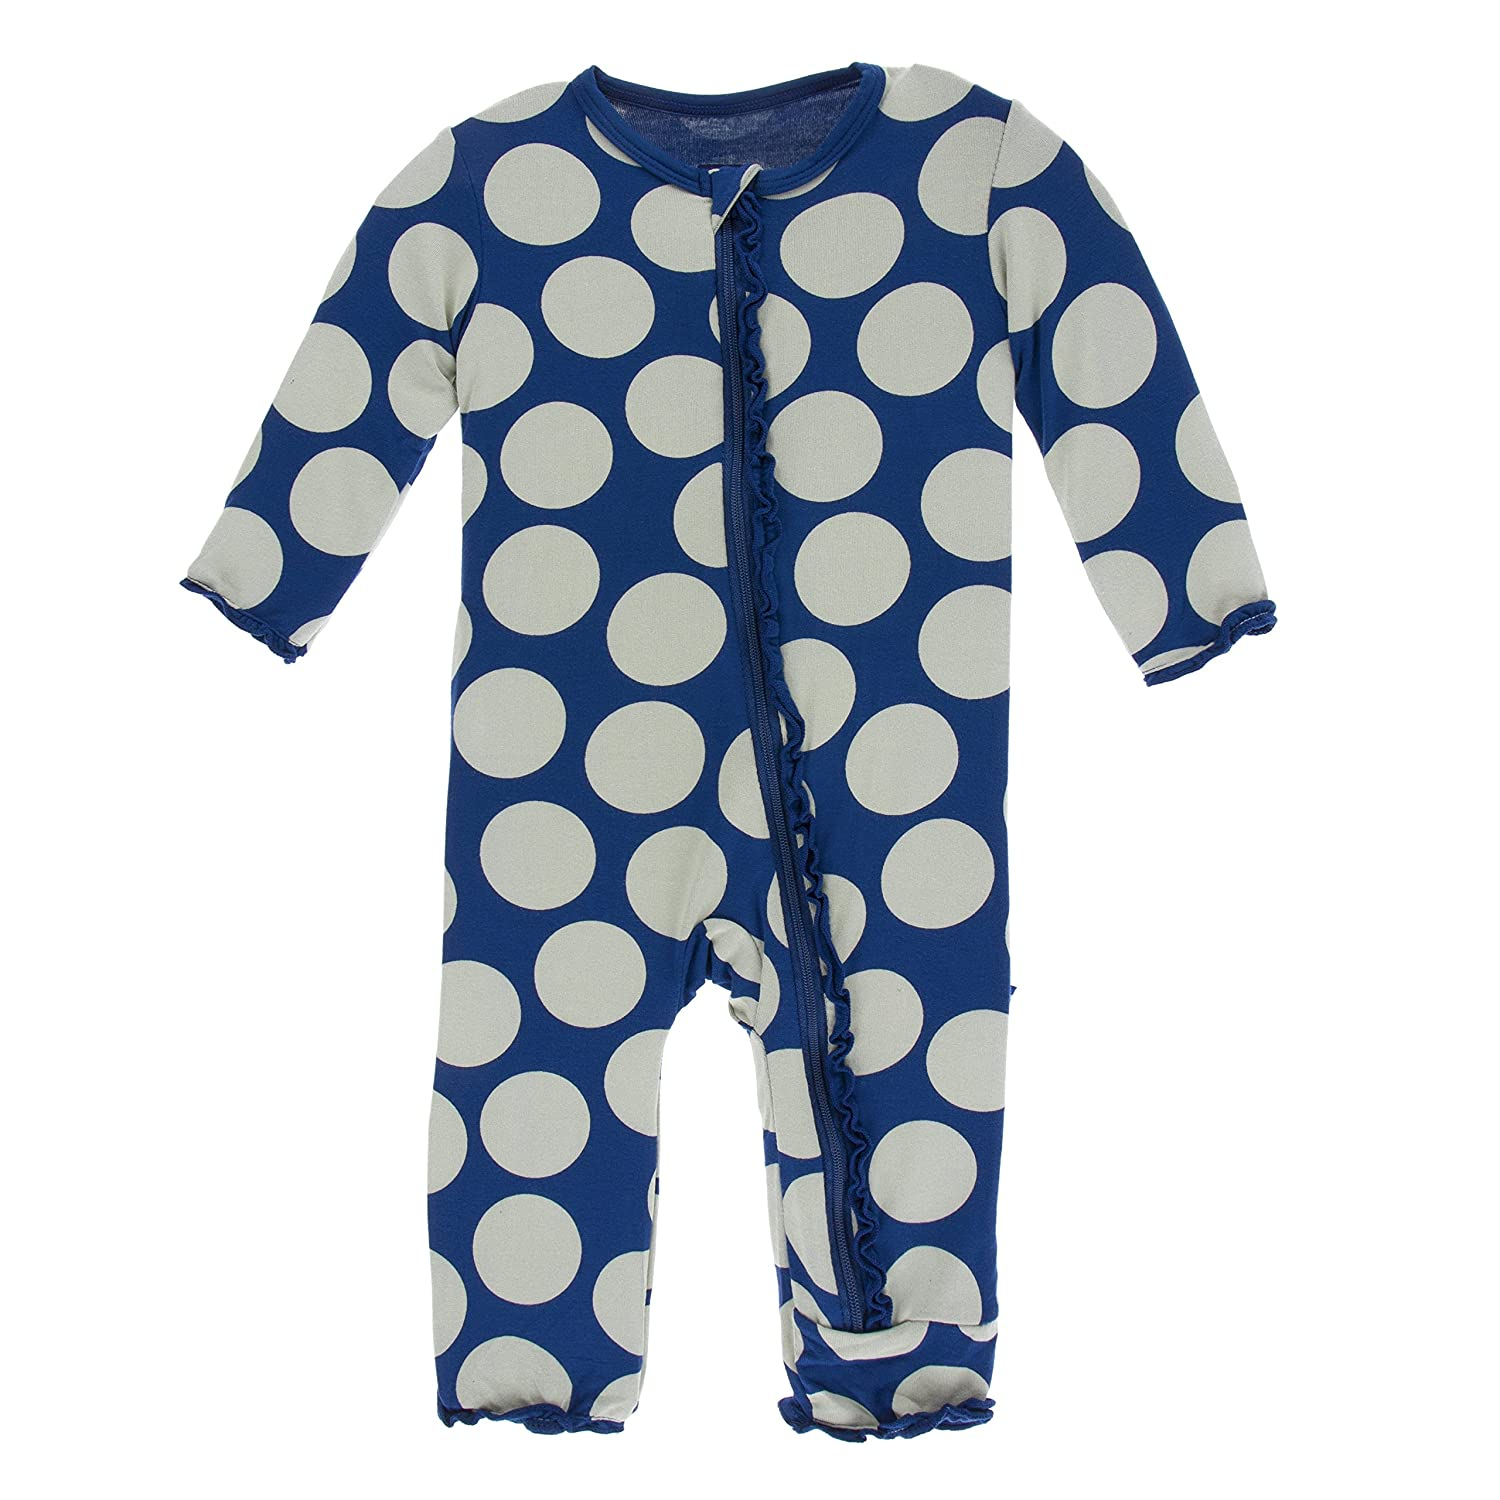 fc1beb9e1 Amazon.com  Kickee Pants Print Muffin Ruffle Coverall with Zipper ...